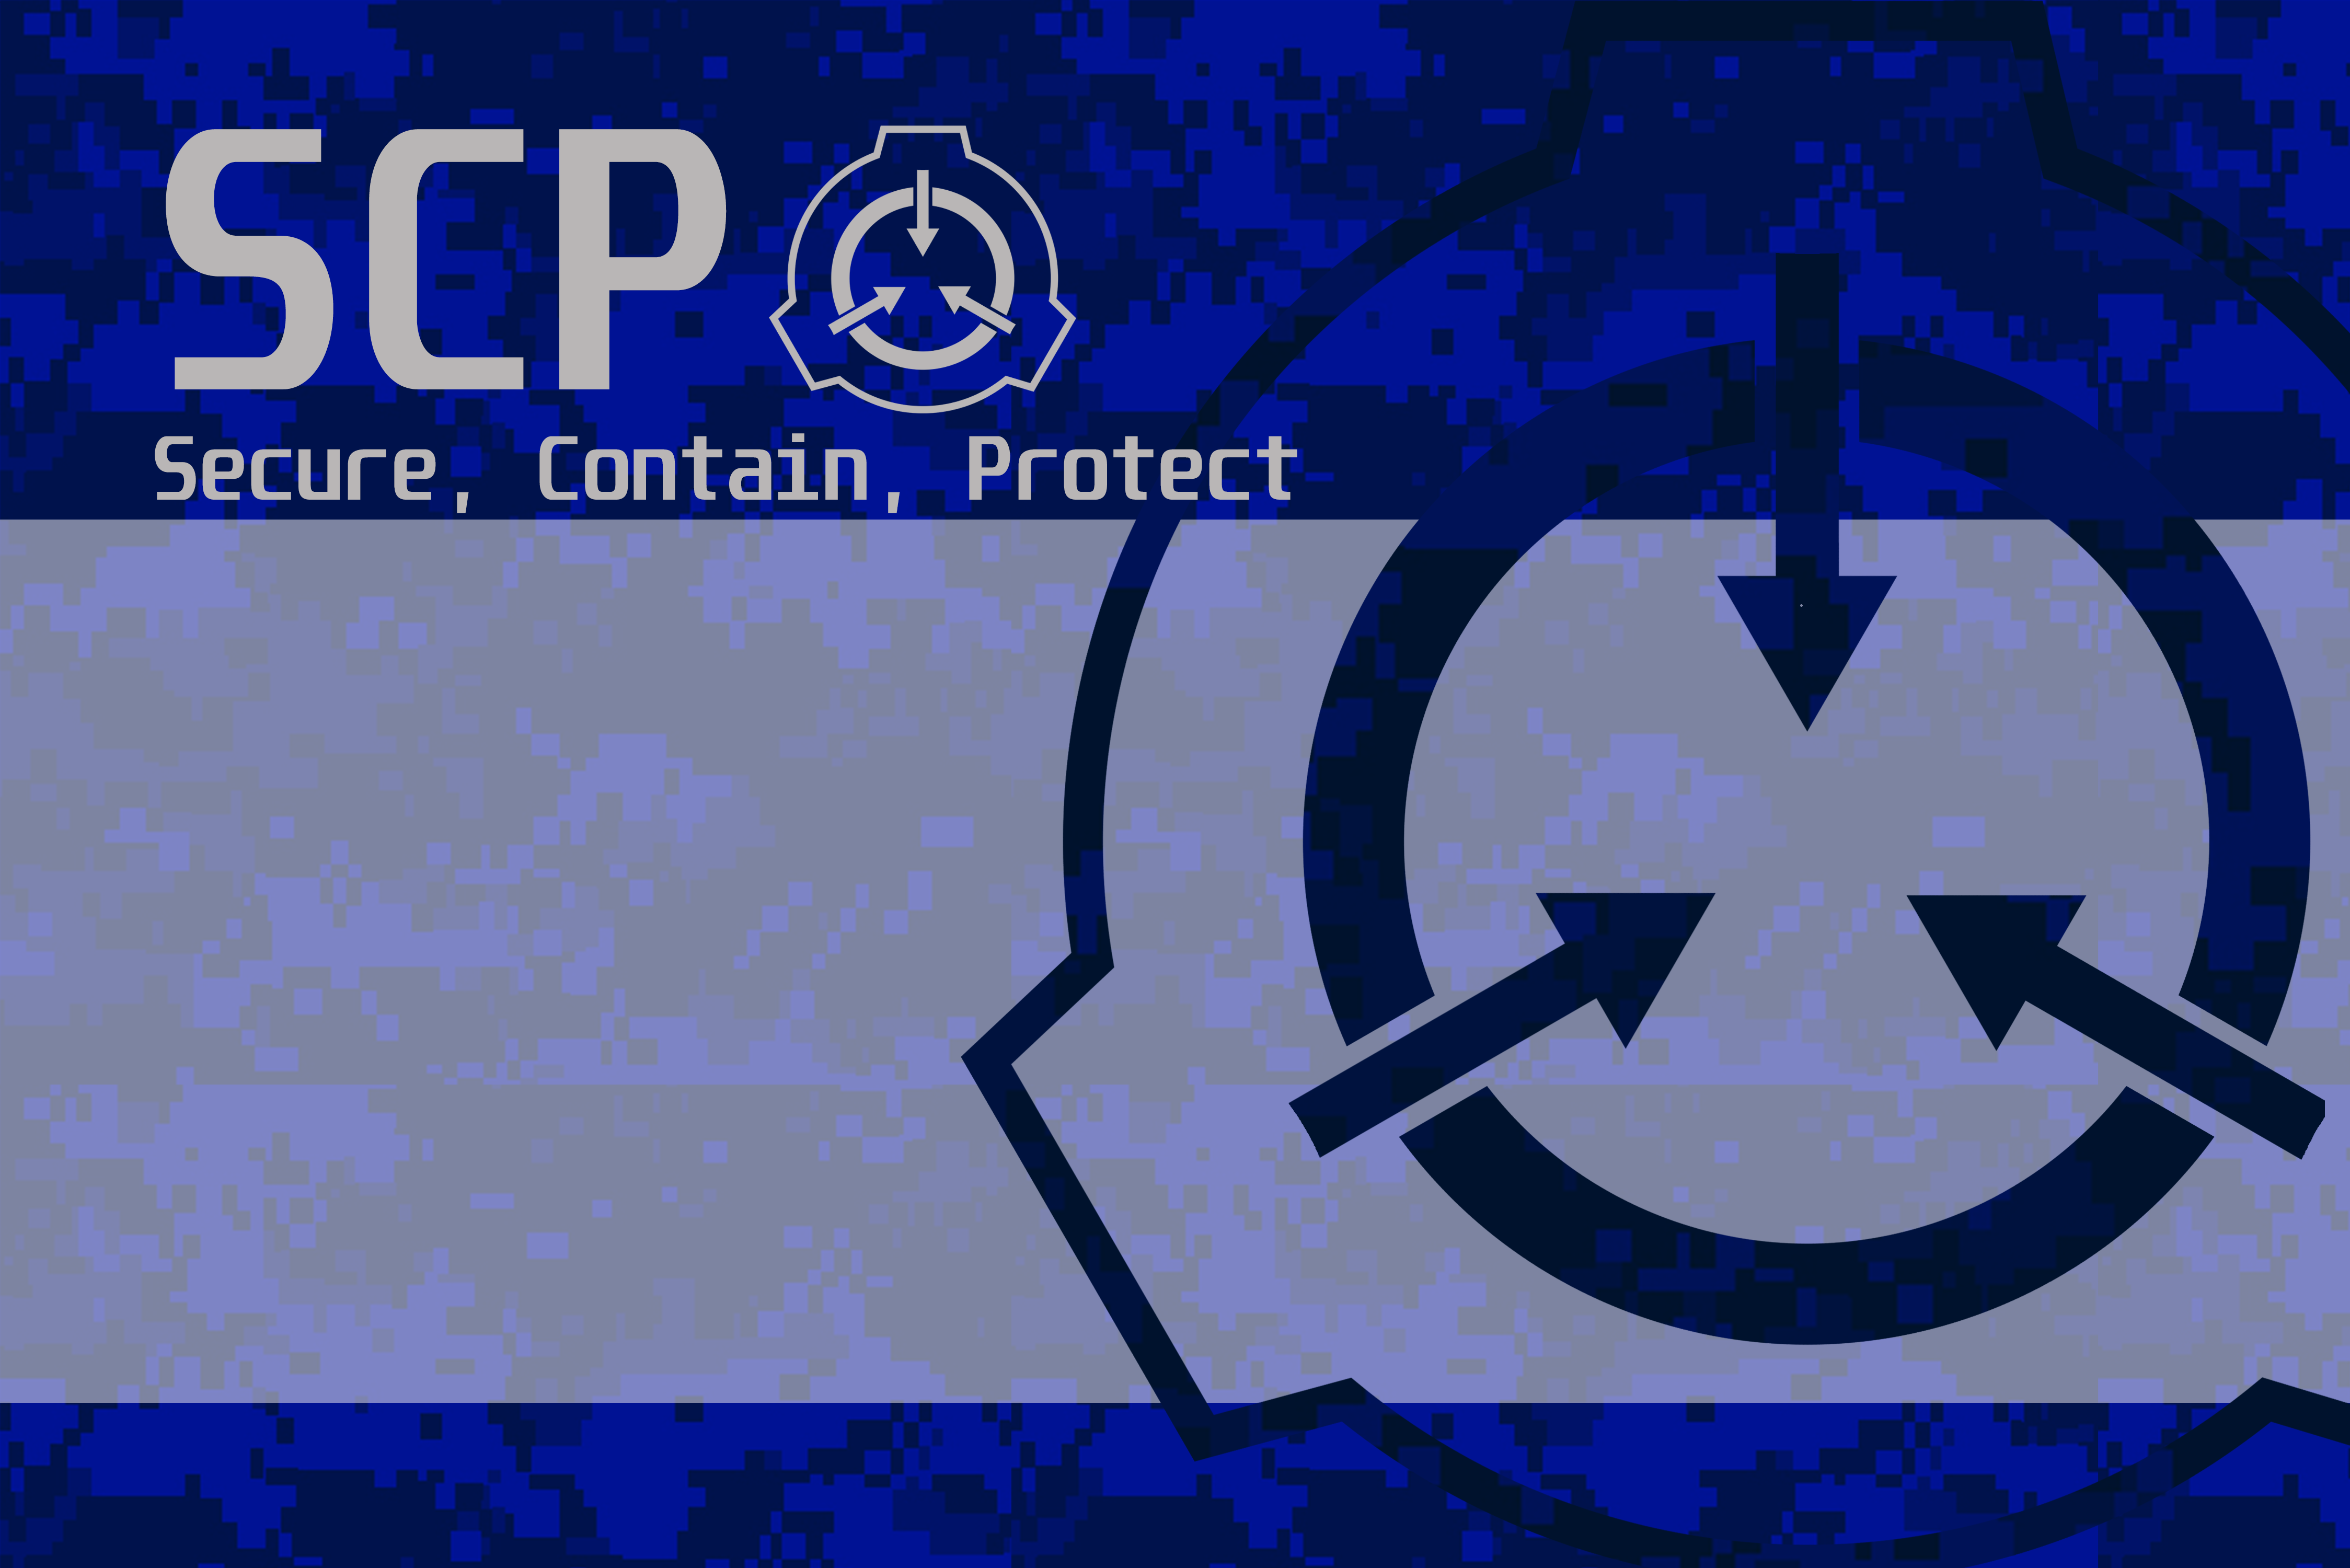 SCP-Ccard-CamoBlue-01.png